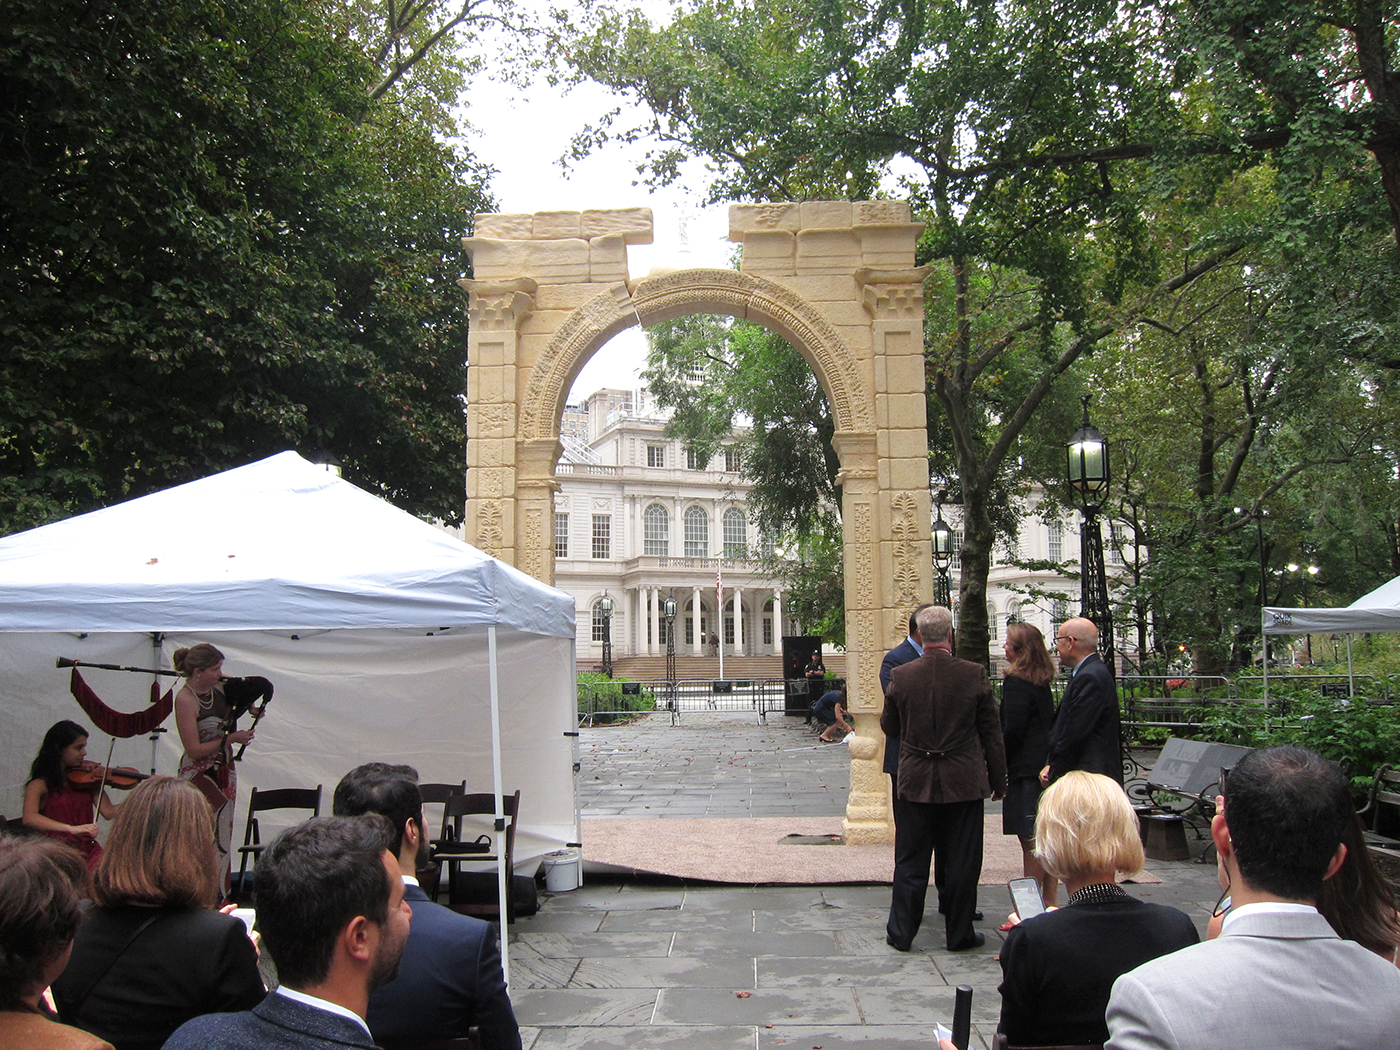 slick replica of palmyra's triumphal arch arrives in new york